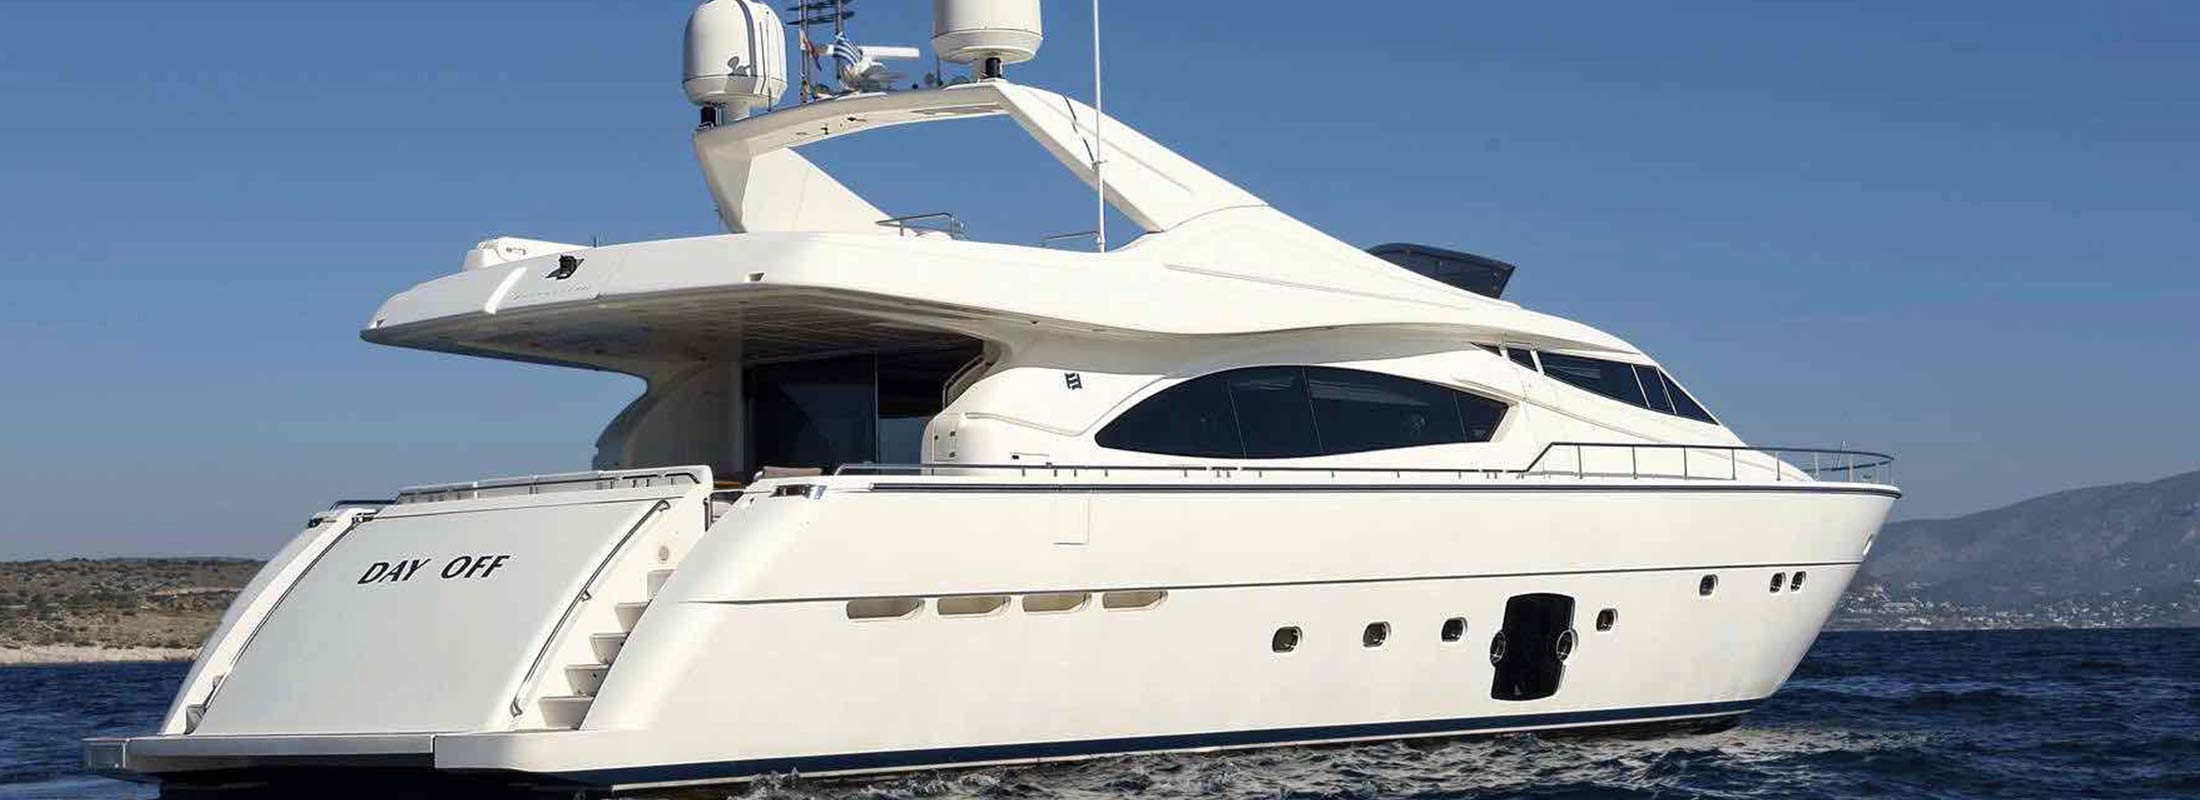 Day Off Motor Yacht for Charter Mediterranean slider 2